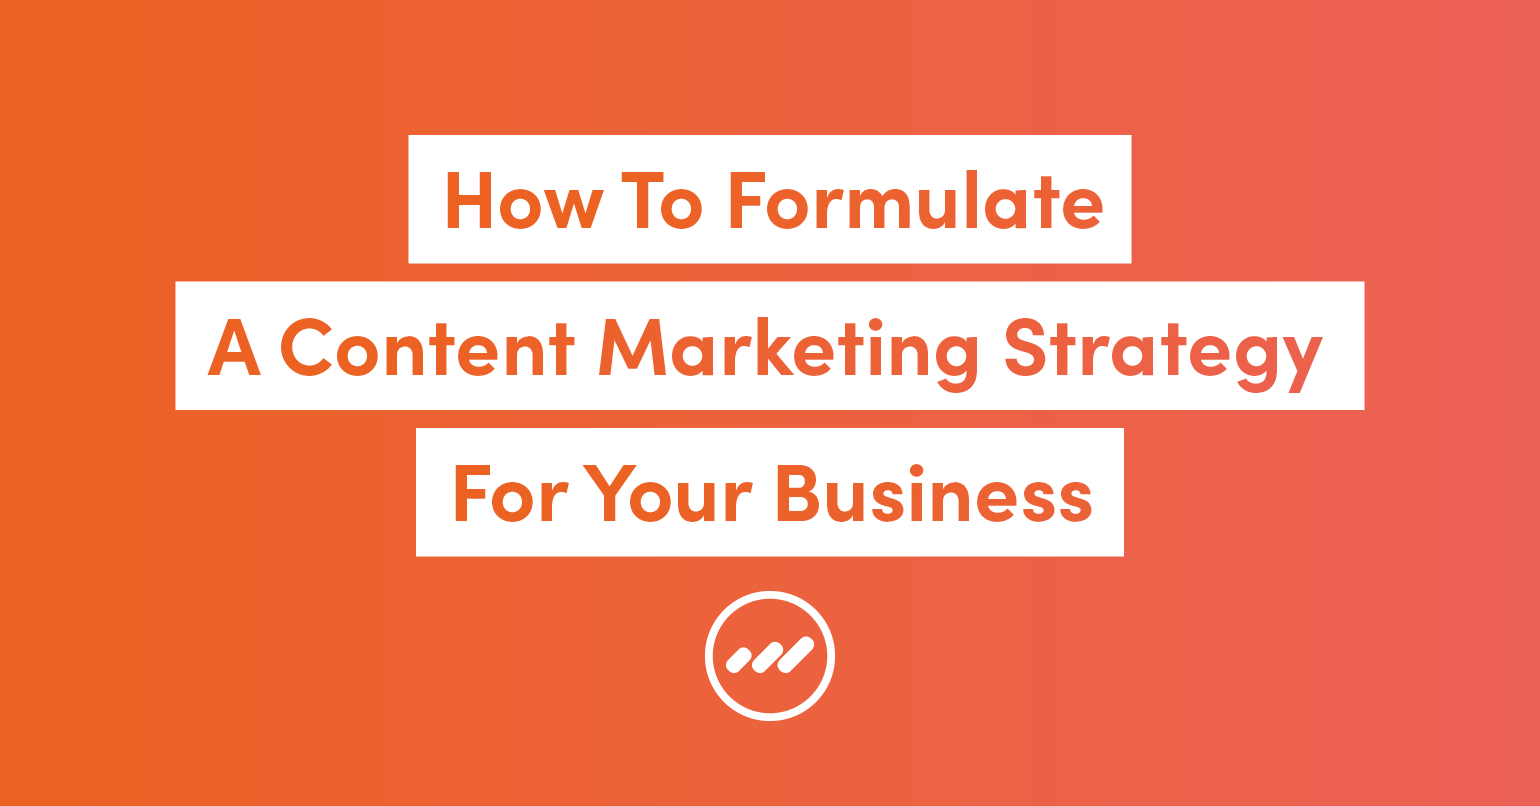 HowToFormulateAContentMarketingStrategy